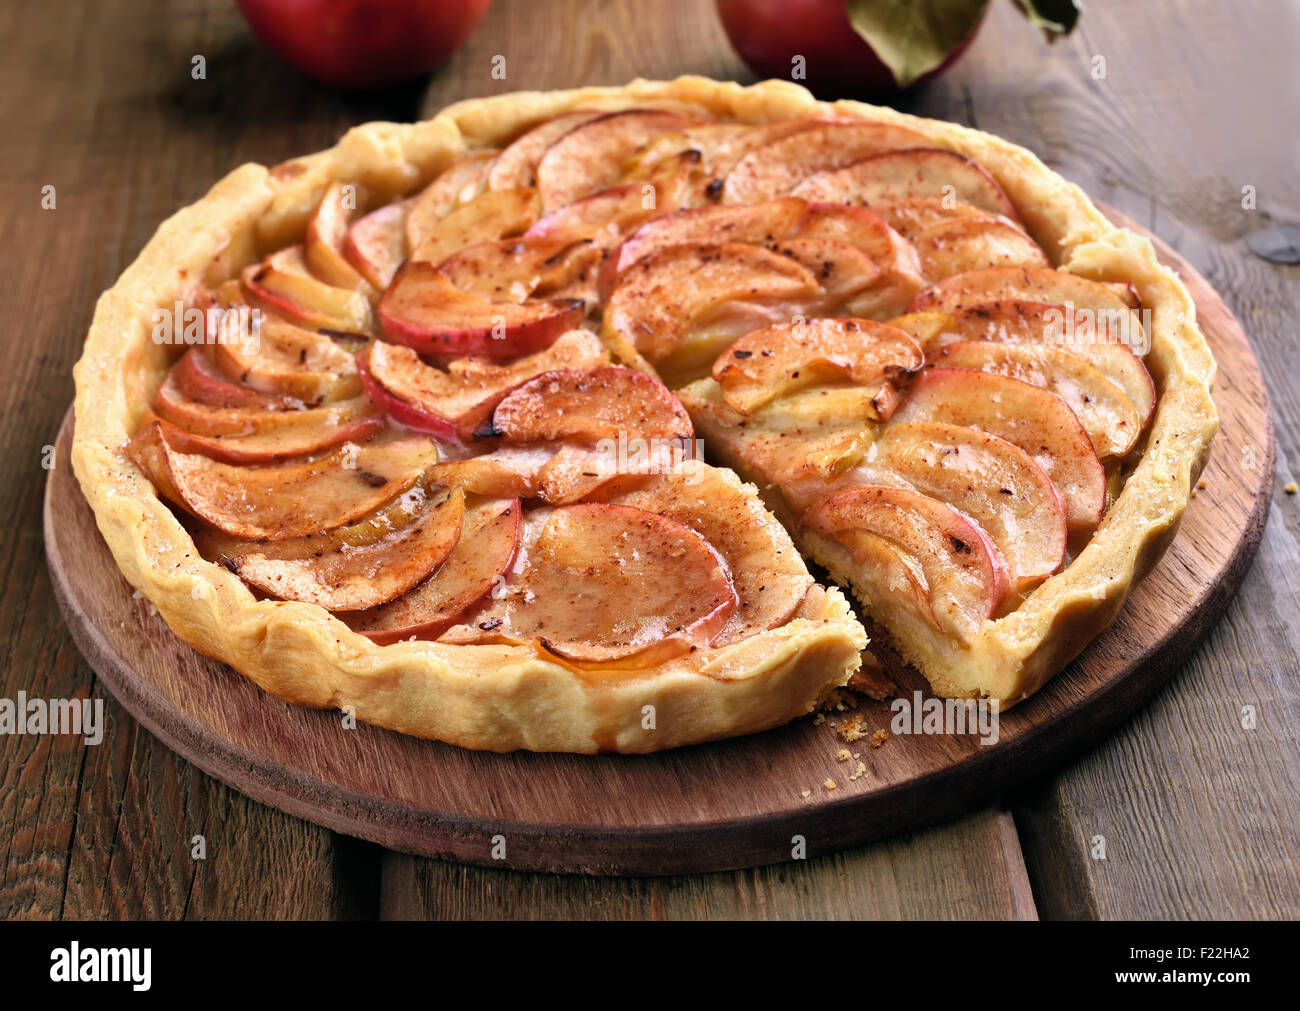 Pie with fresh apples on wooden table, close up view - Stock Image